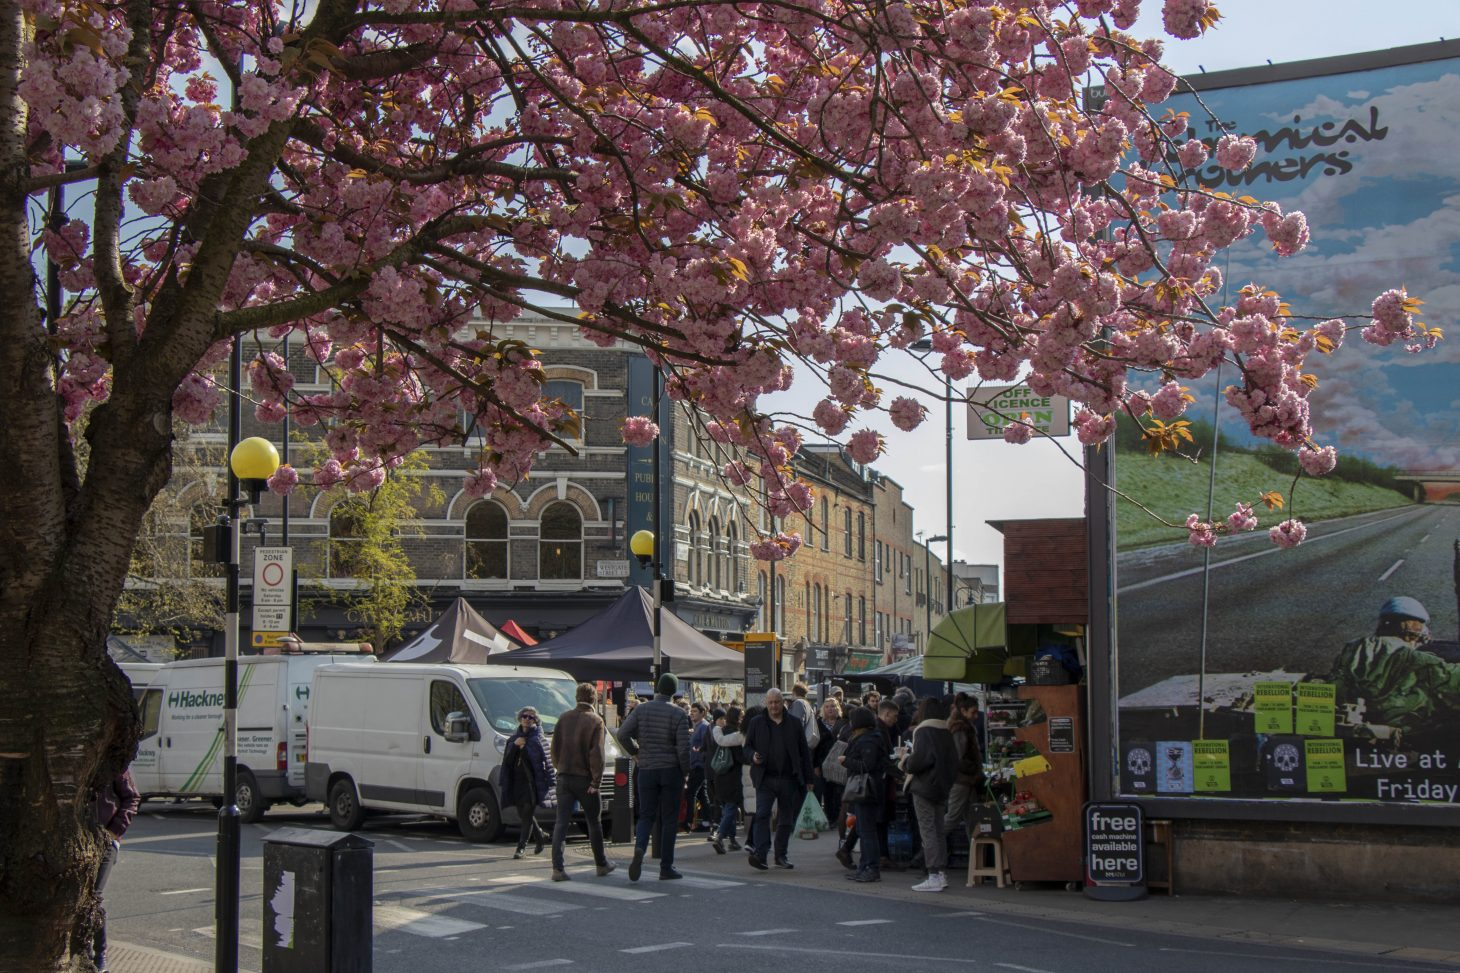 Cherry blossom at Broadway Market, London